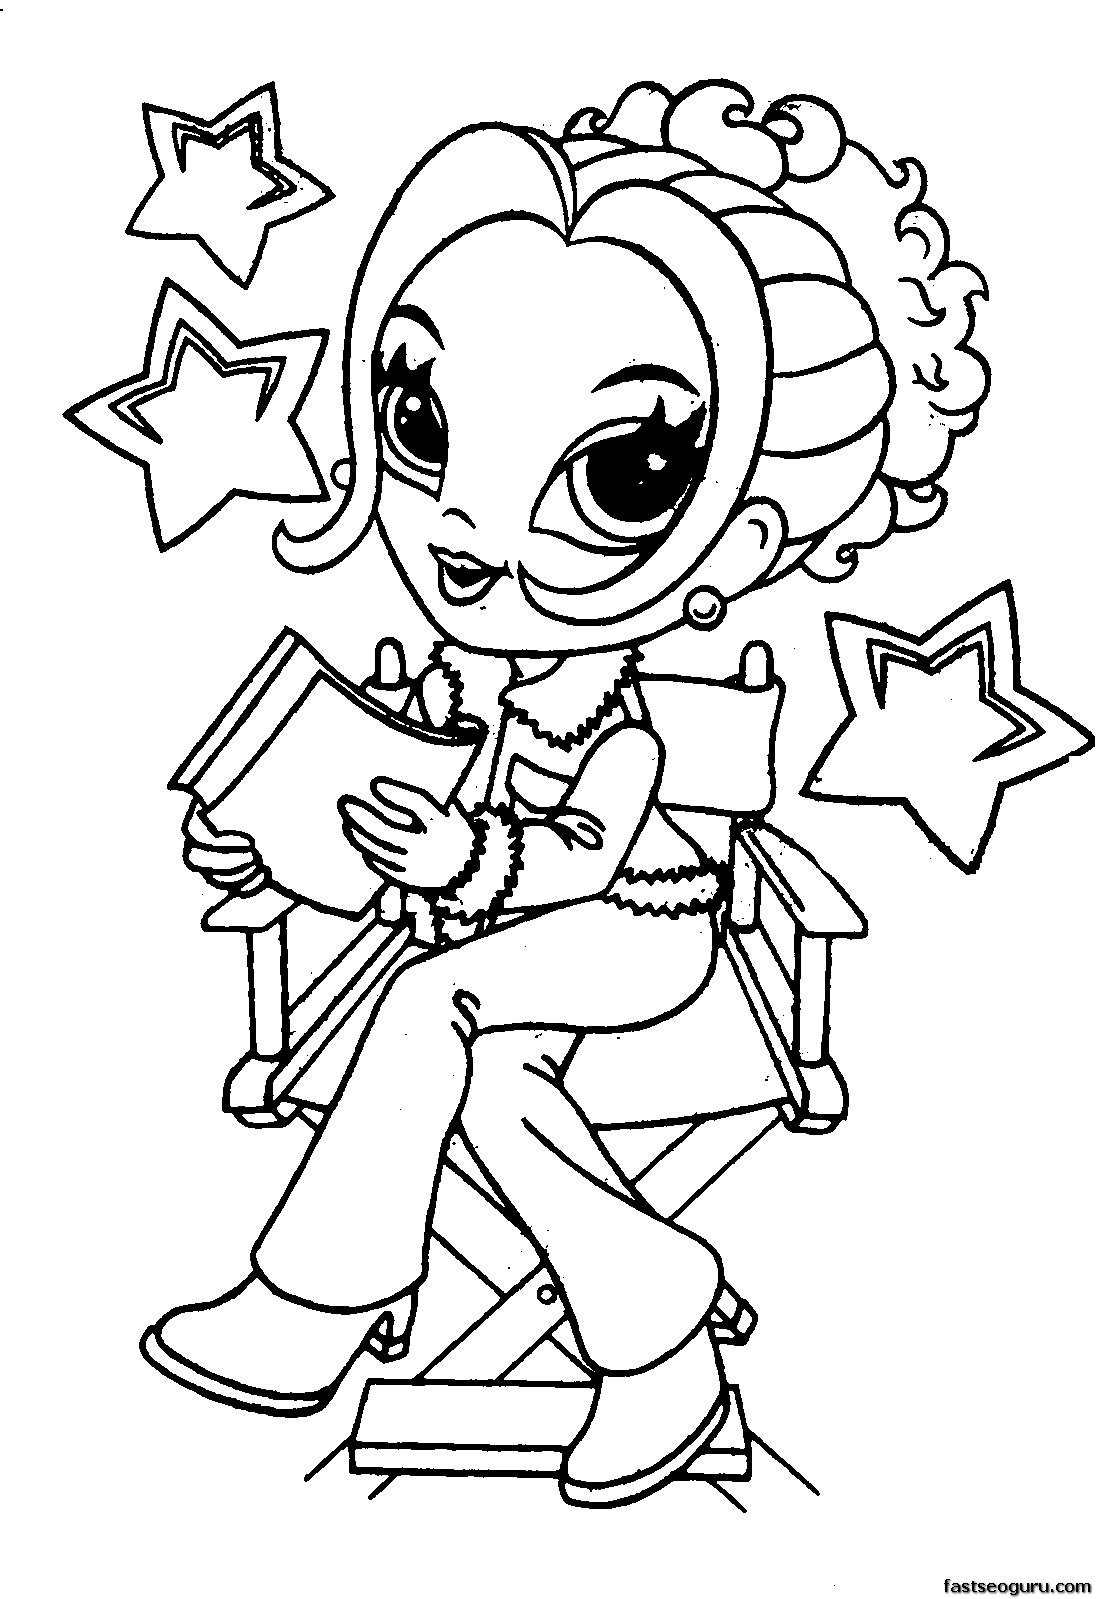 Cute girl coloring pages to download